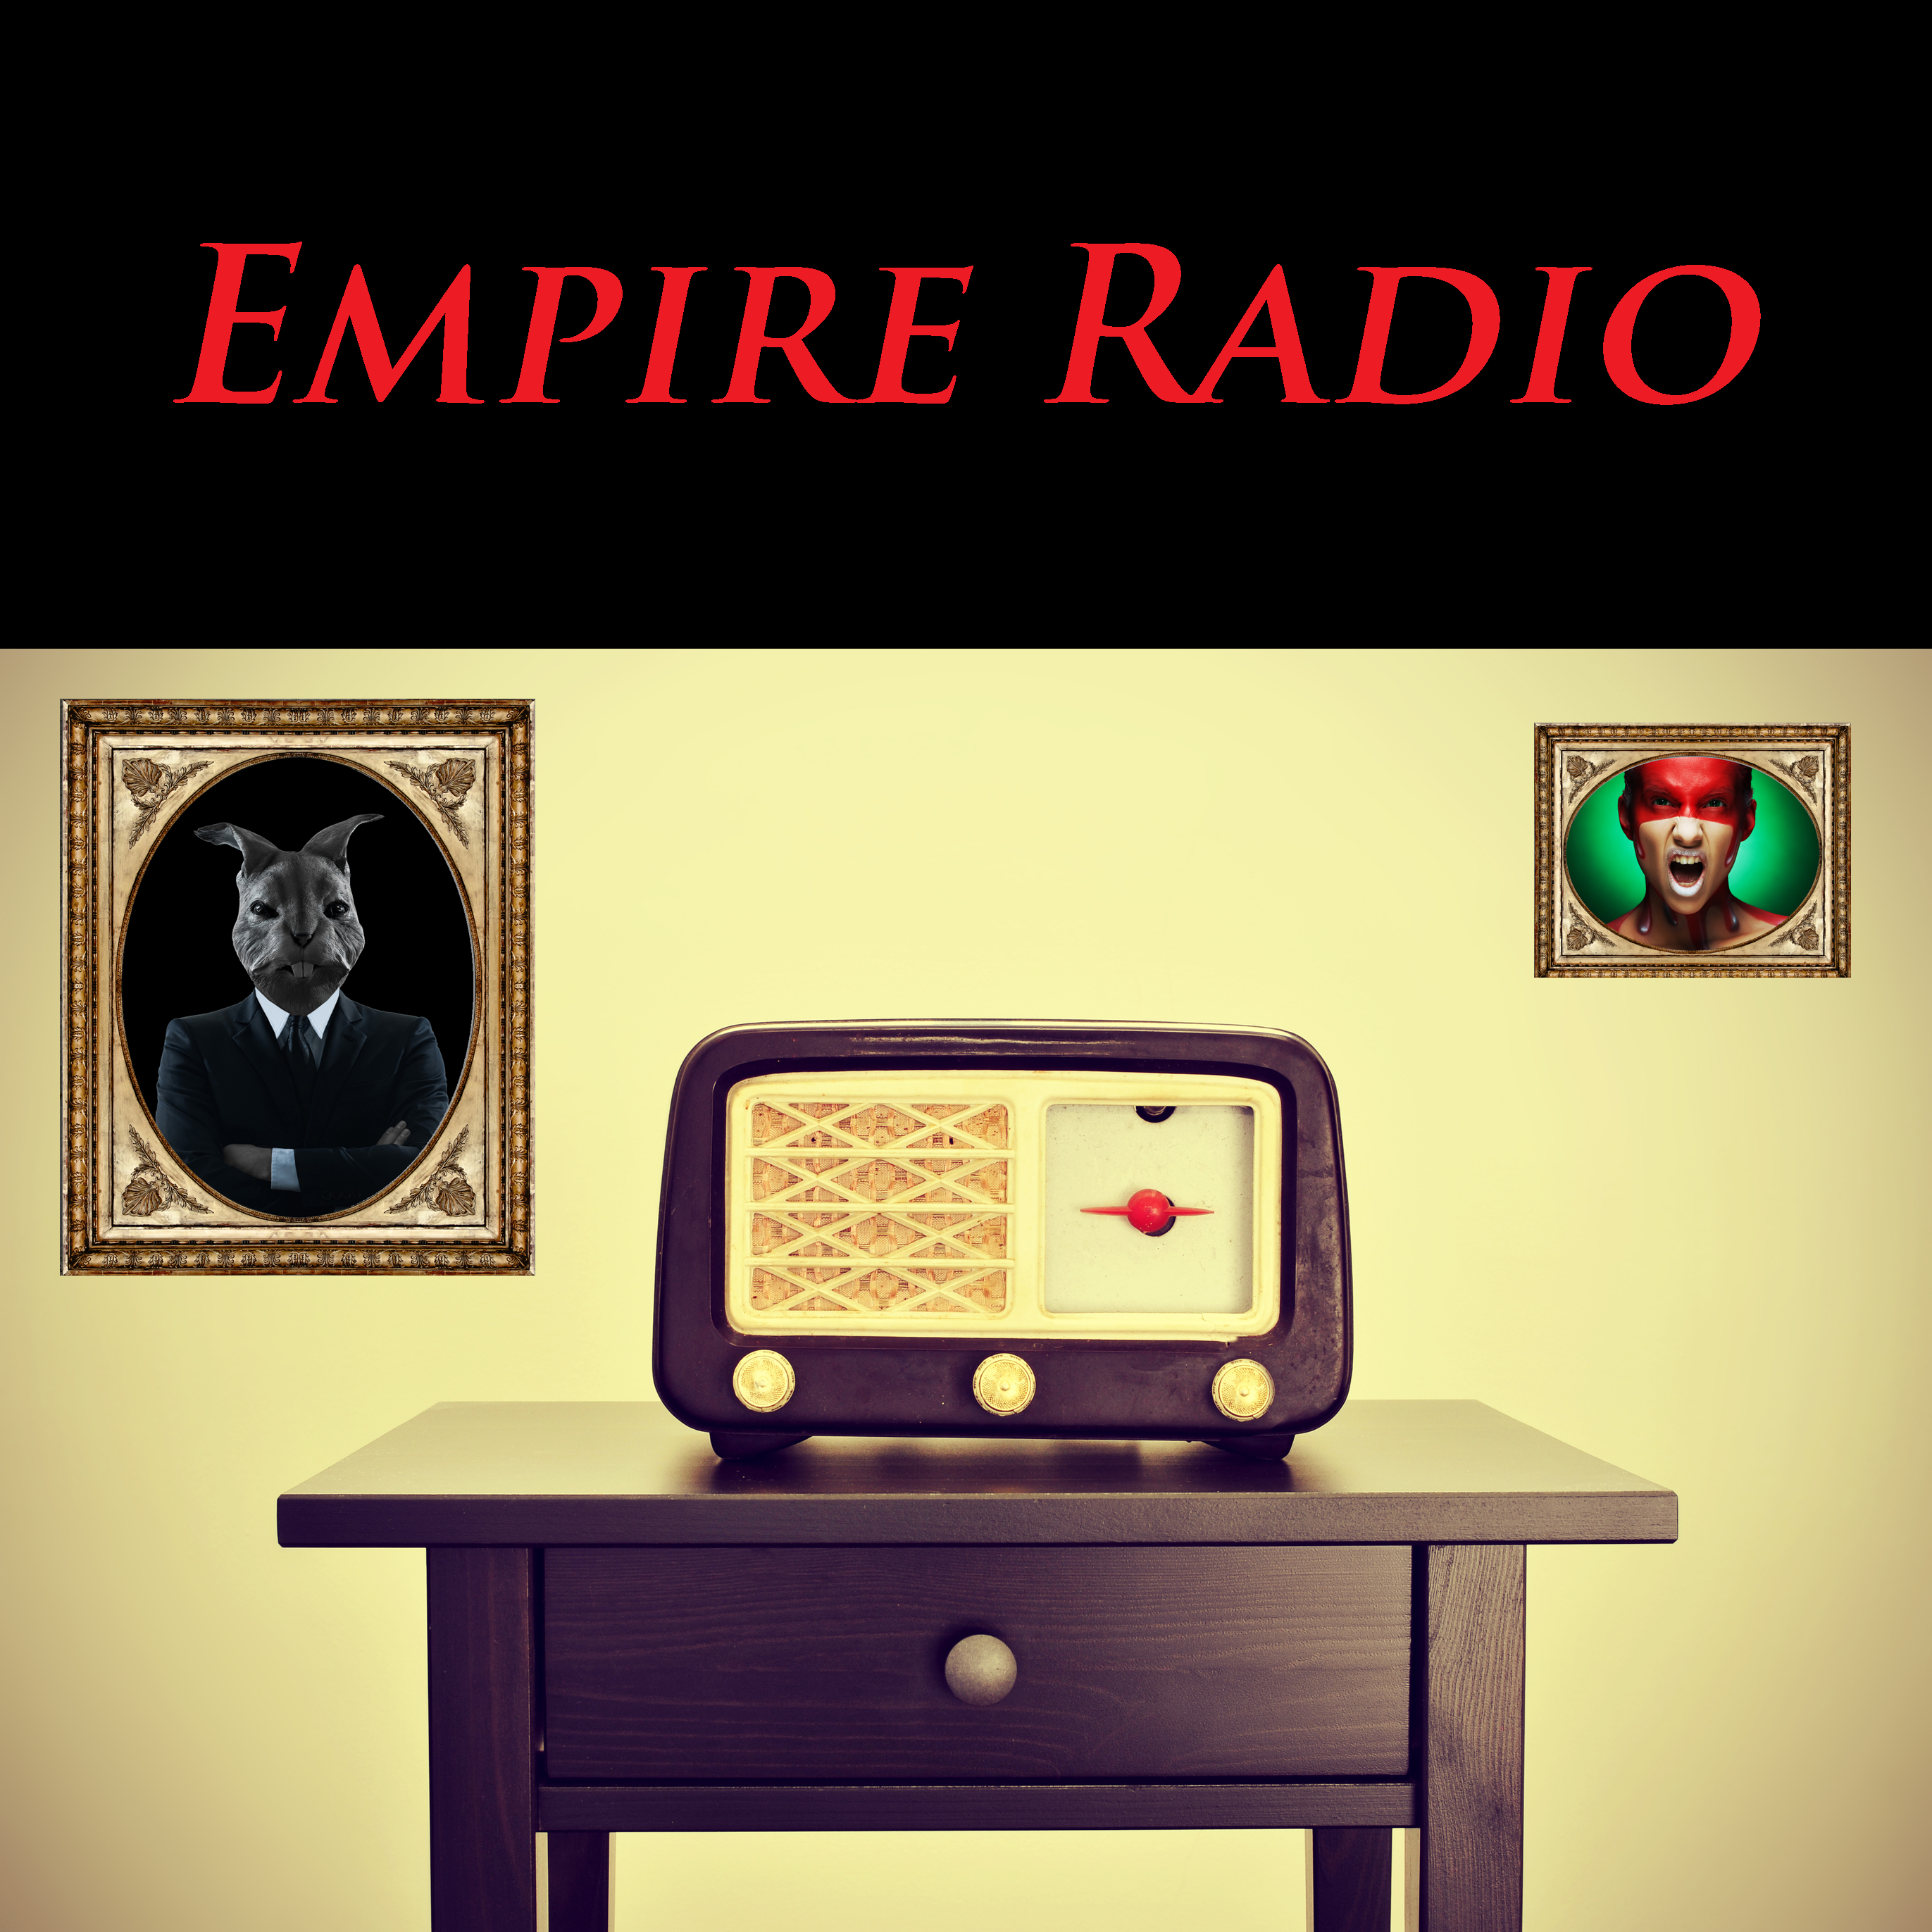 Empire Radio show art